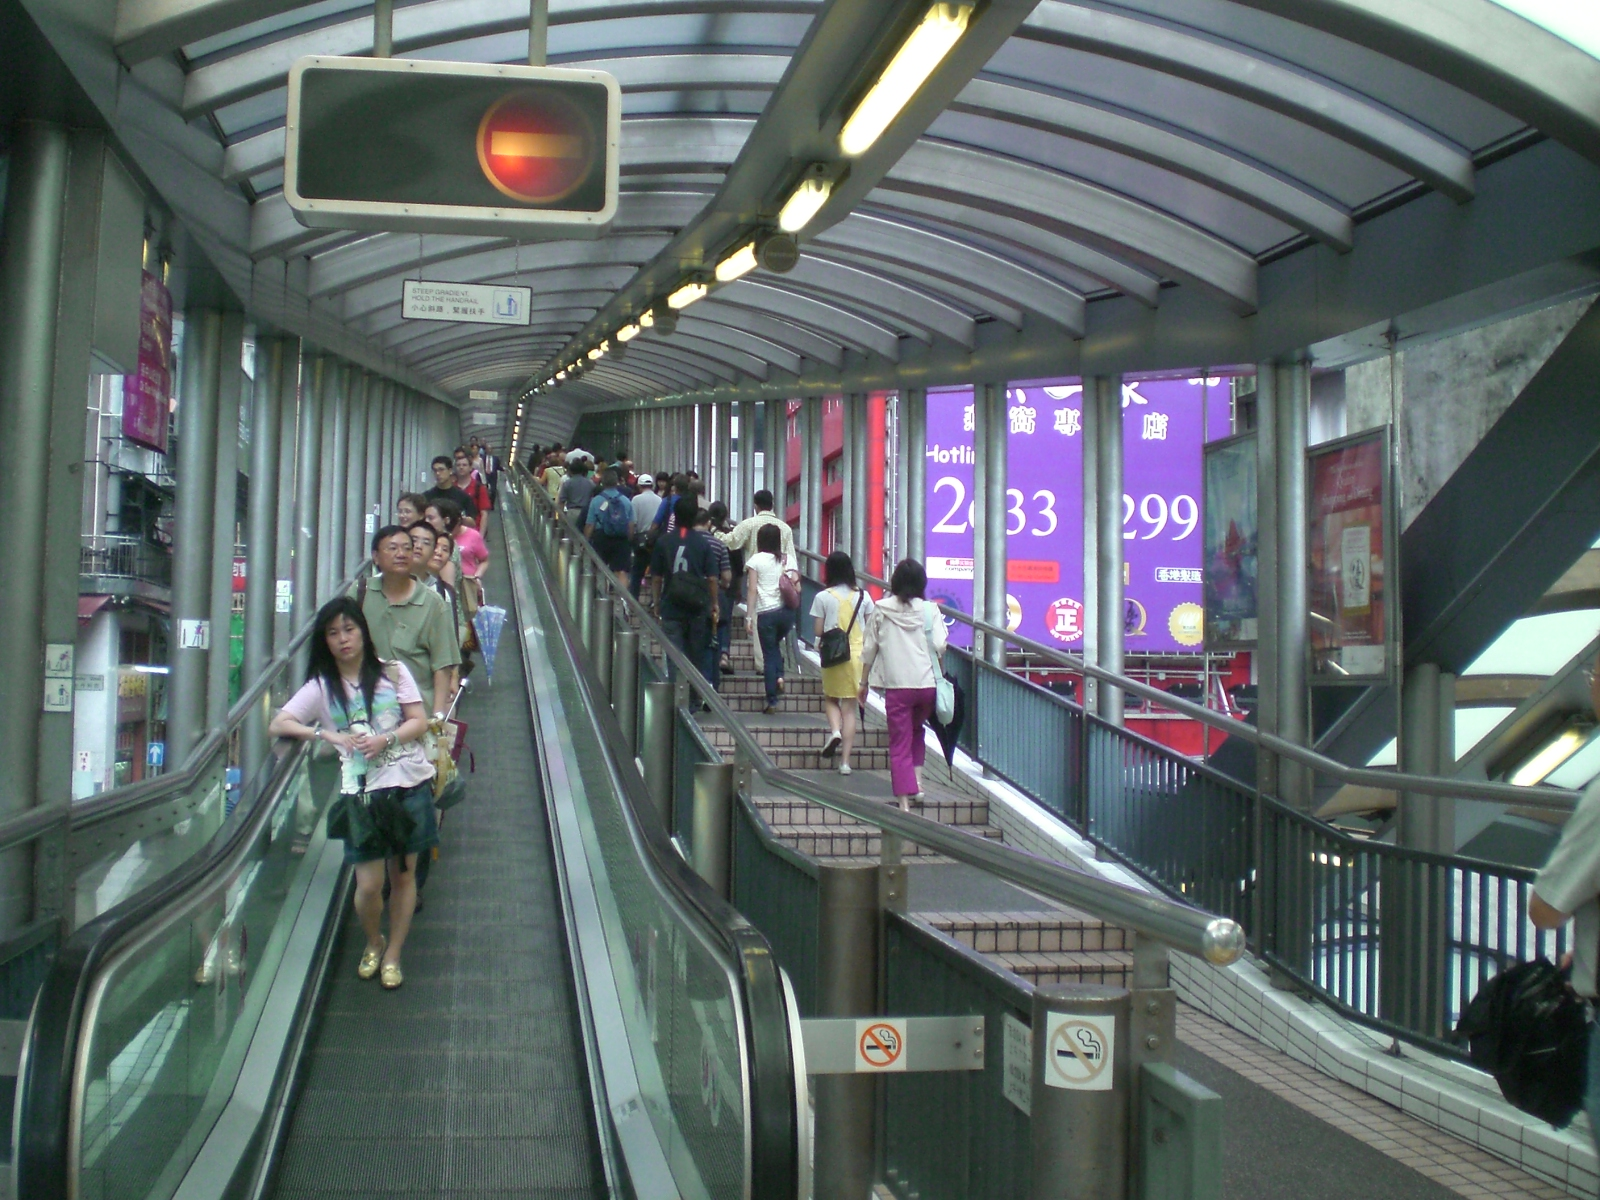 Hong Kong Central-Mid-Levels escalators (1)